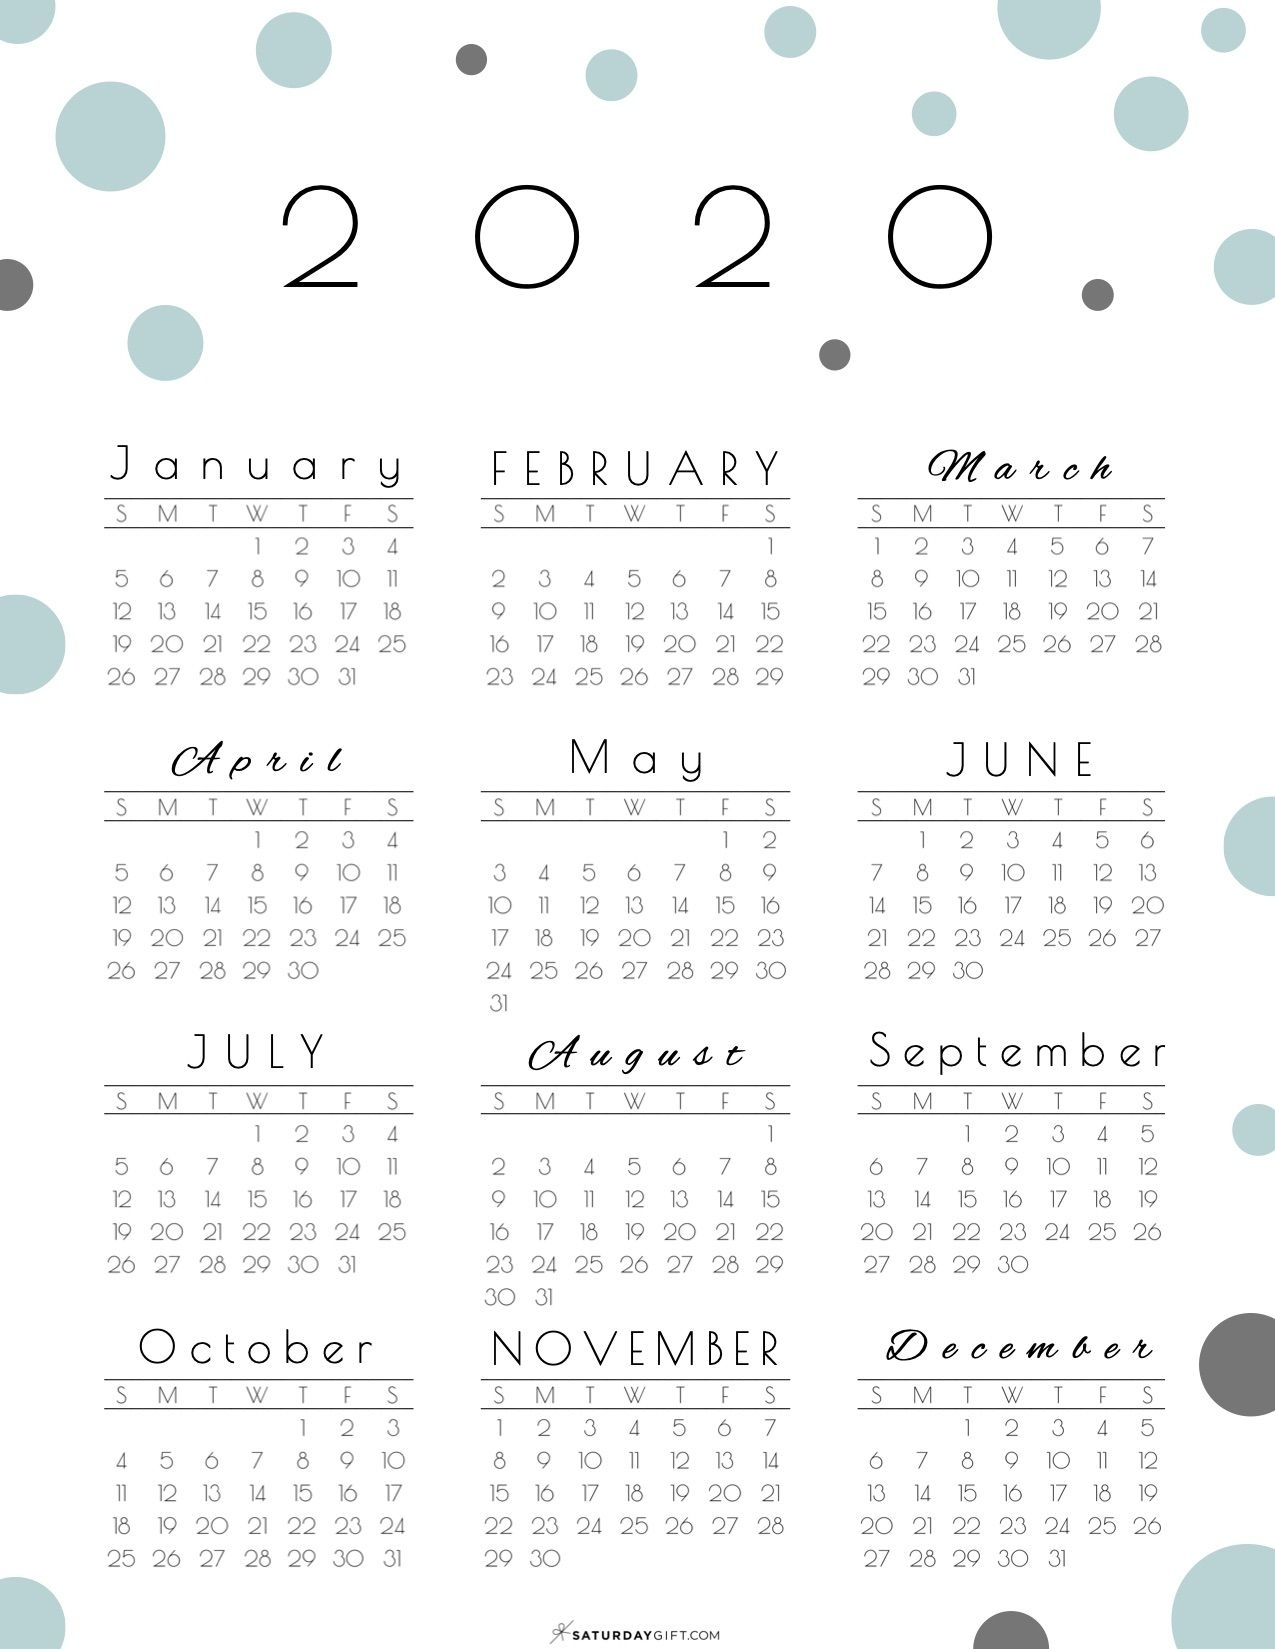 Year At A Glance Calendar 2020 - Pretty (And Free intended for 2020 Year At A Glance